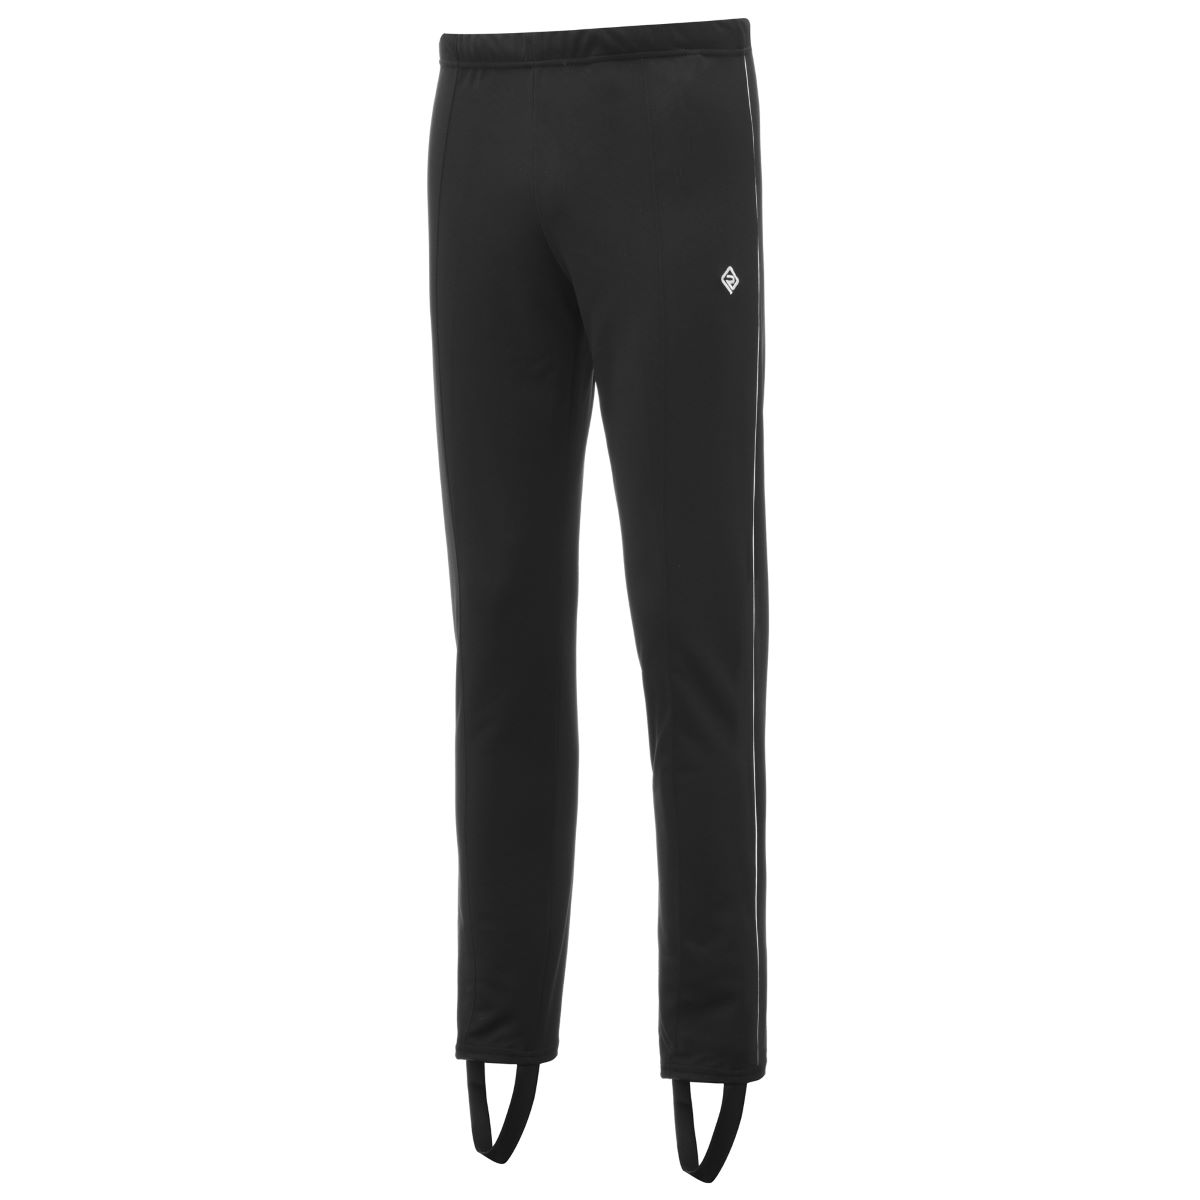 Collant de course Ronhill Classic - S Noir/Blanc | Joggings